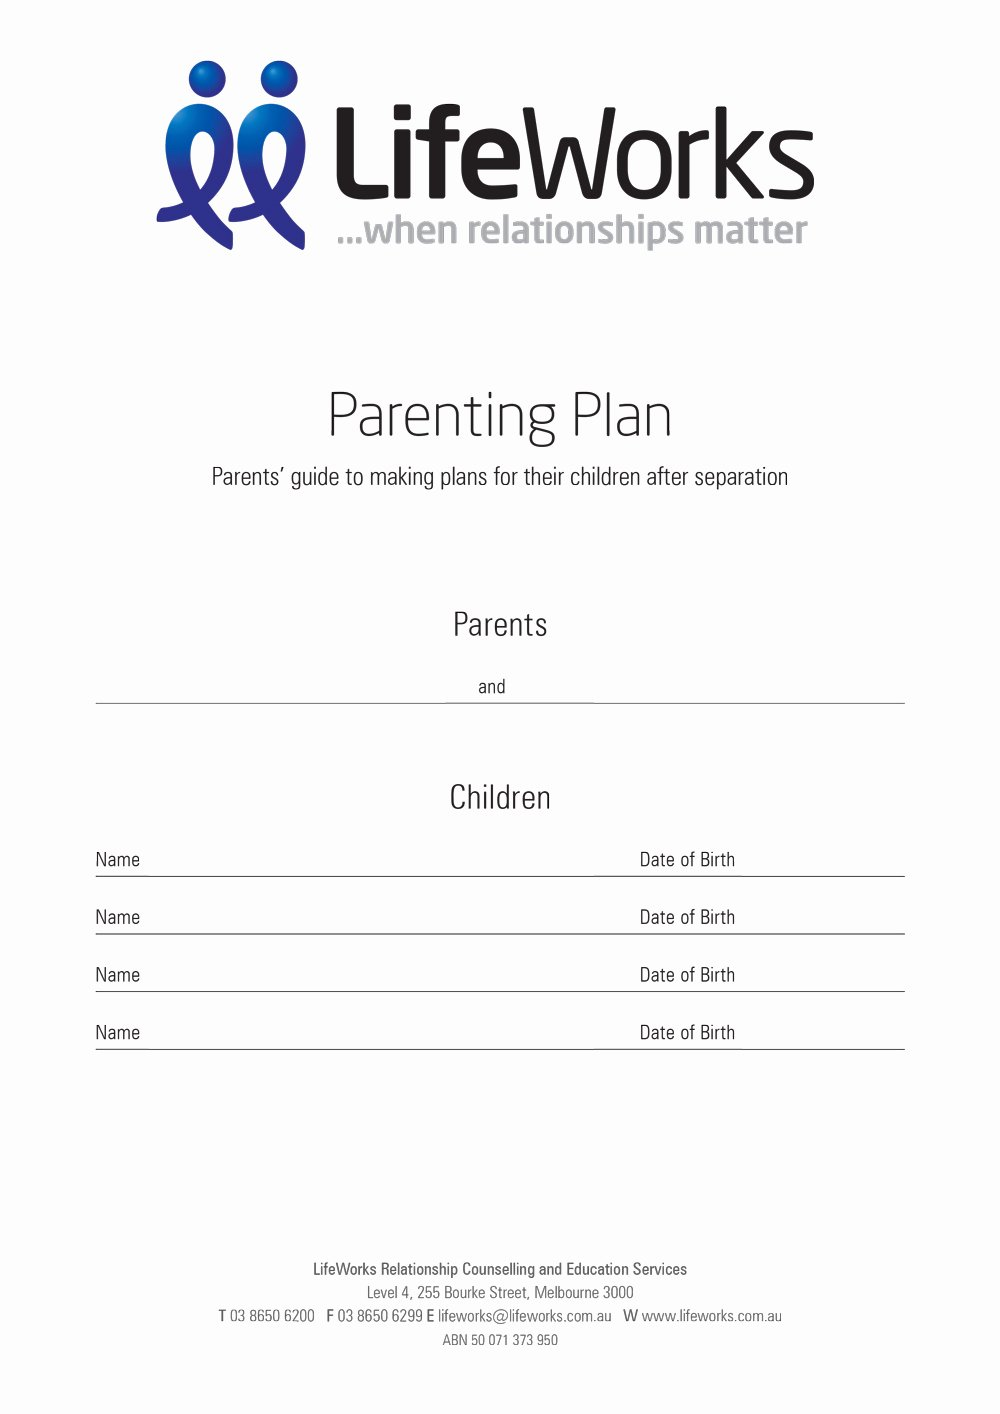 Pre Marriage Counseling Certificate Template Best Of Example Parenting Plan Lifeworks